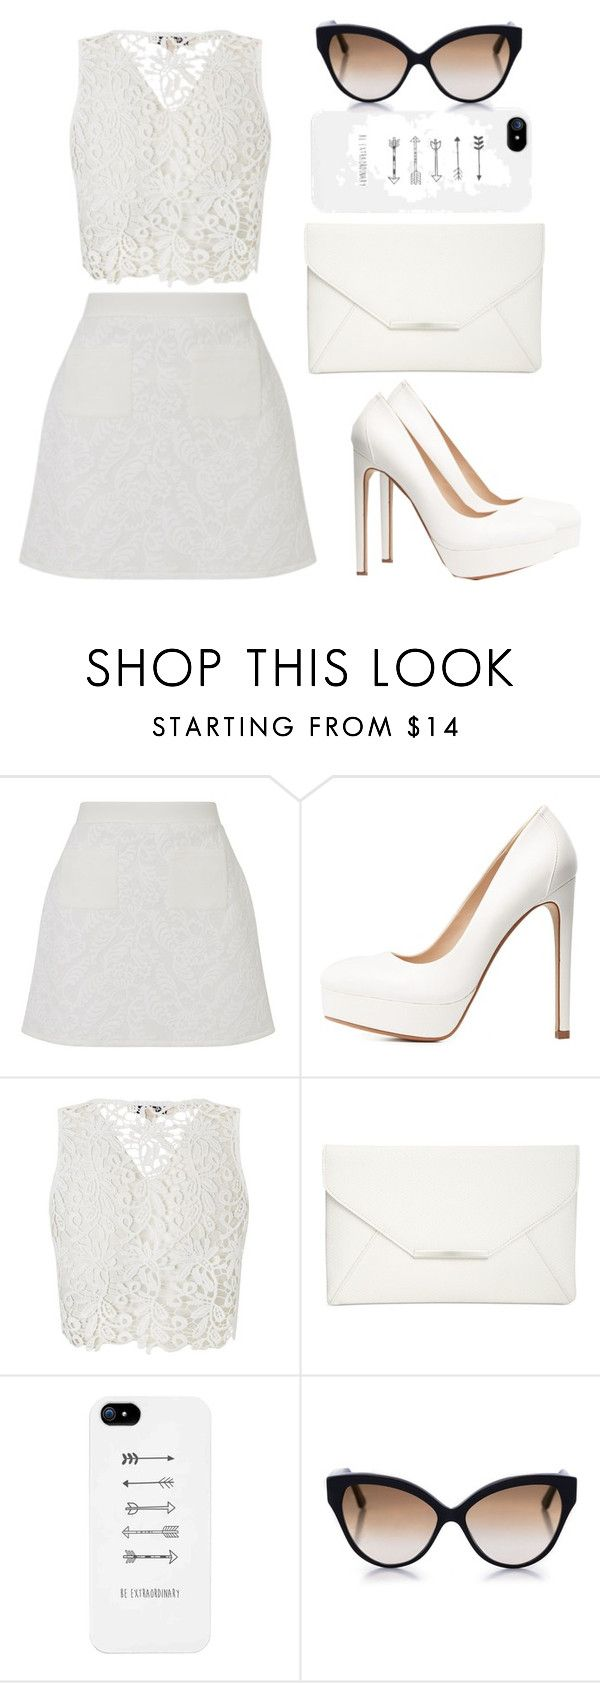 """Untitled #419"" by scarlet-fltcher ❤ liked on Polyvore featuring Lipsy, Charlotte Russe, Style & Co. and Cutler and Gross"